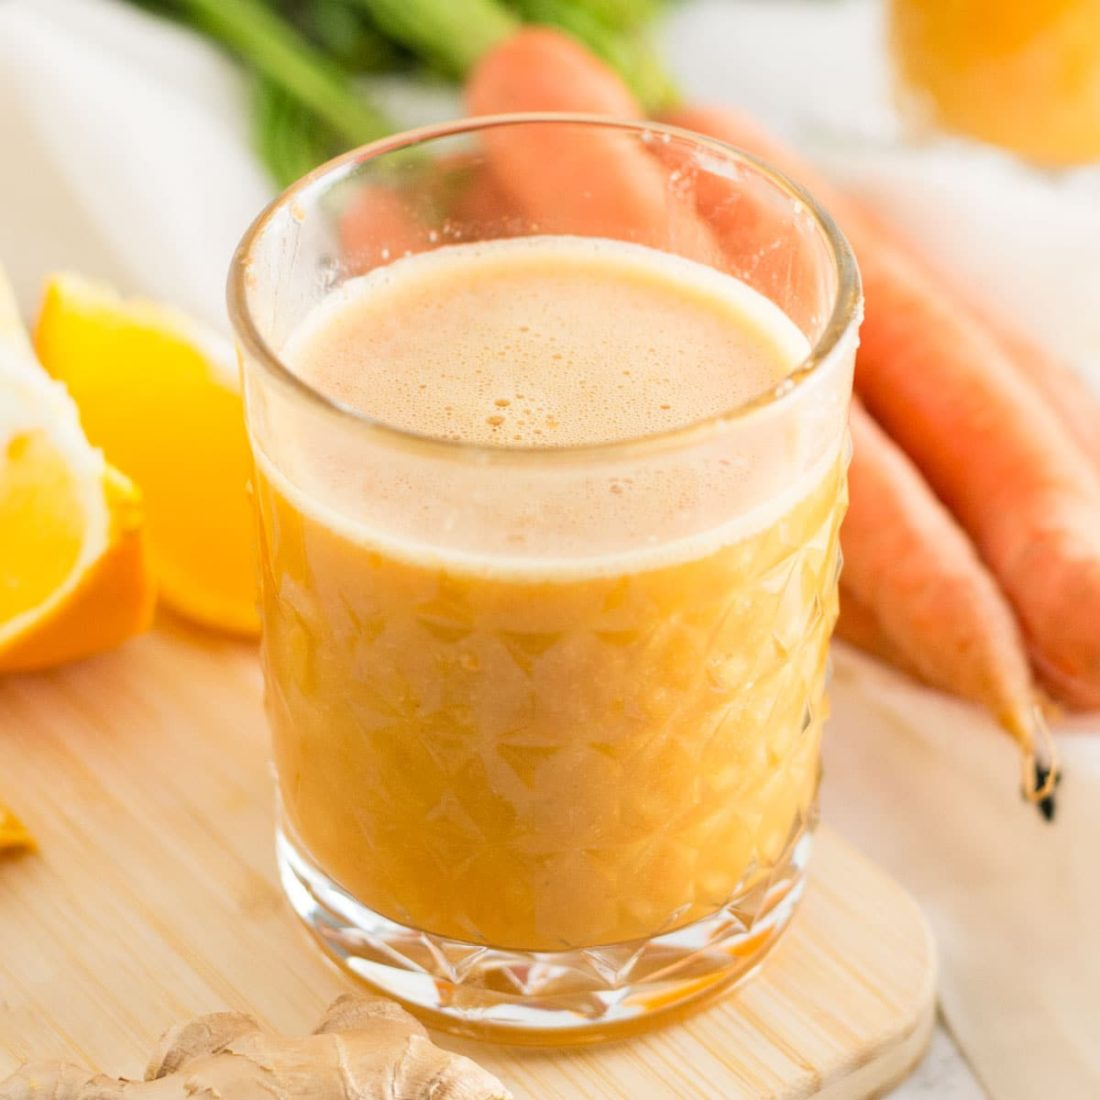 orange smoothie, orange slices, ginger on cutting board with carrots and spoonful of turmeric